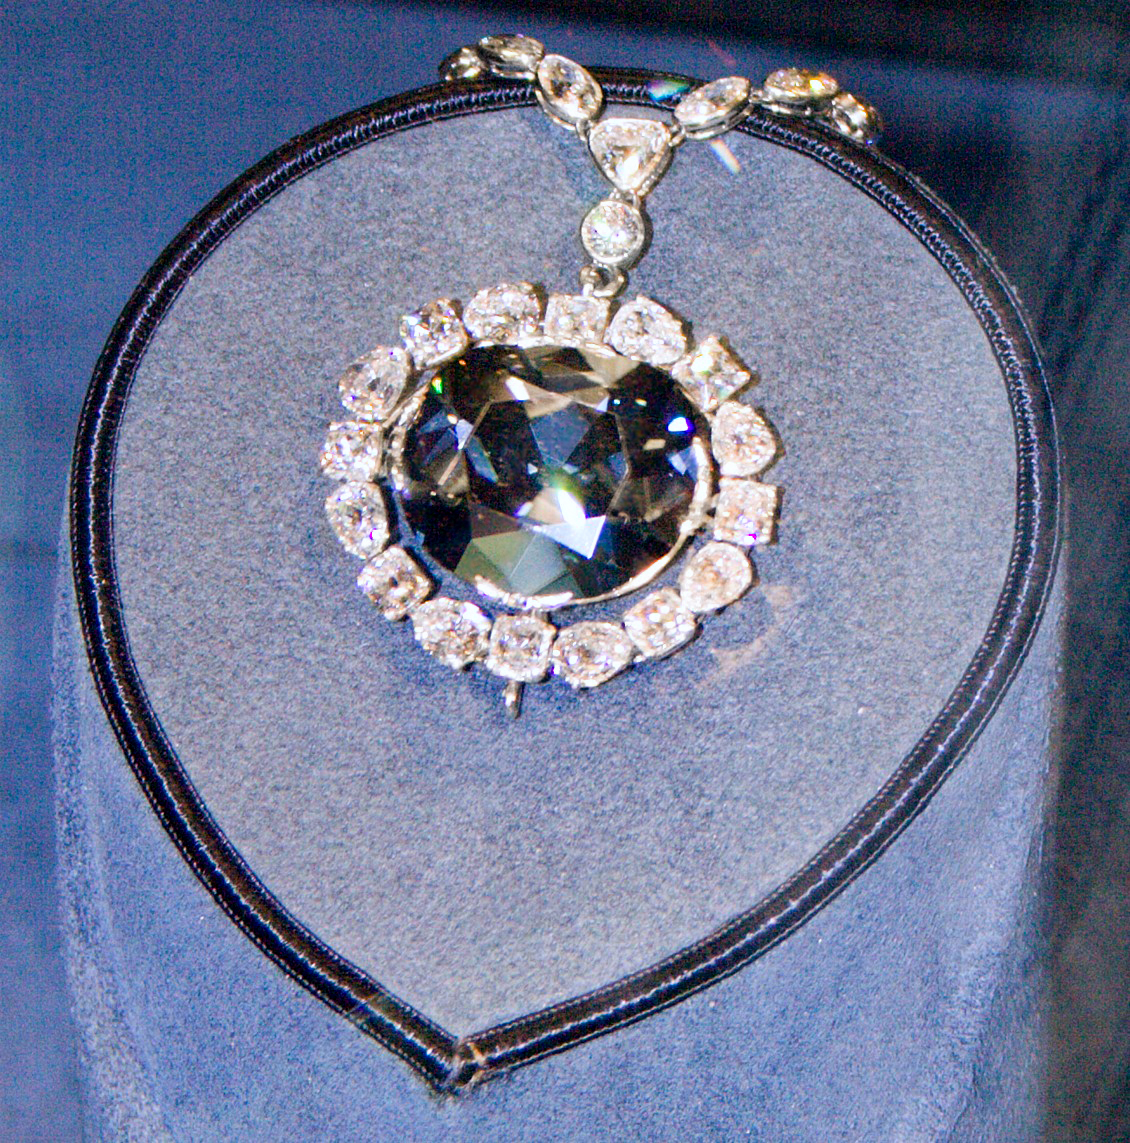 the Cursed Hope Diamond